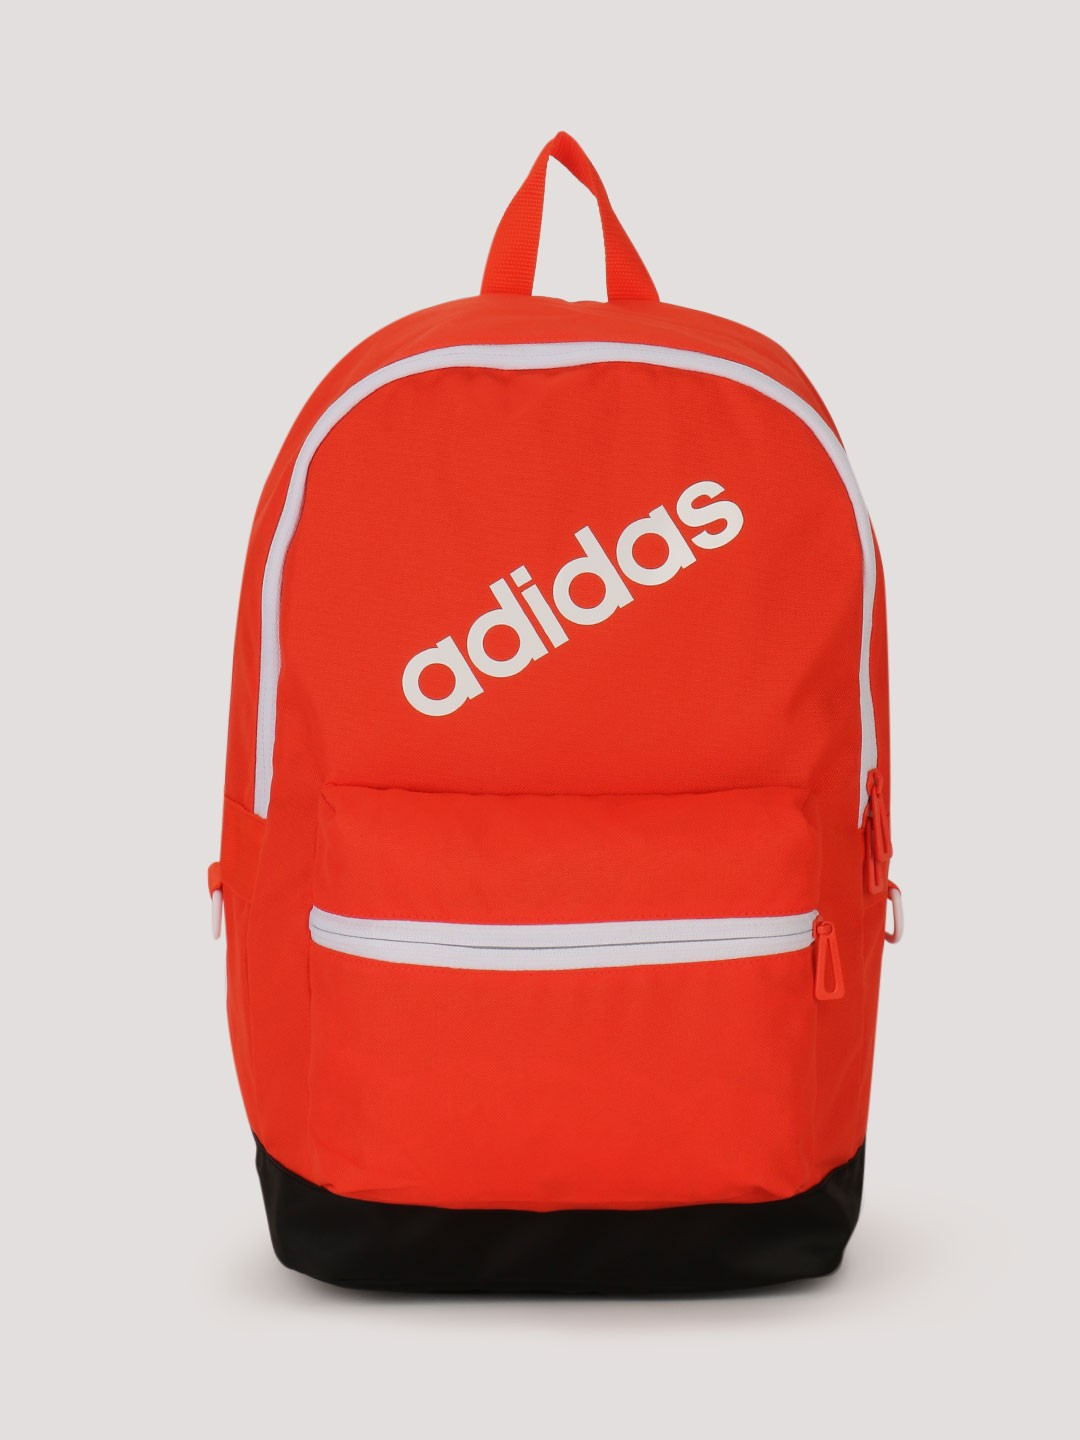 buy adidas neo daily backpack with contrast zip and name. Black Bedroom Furniture Sets. Home Design Ideas